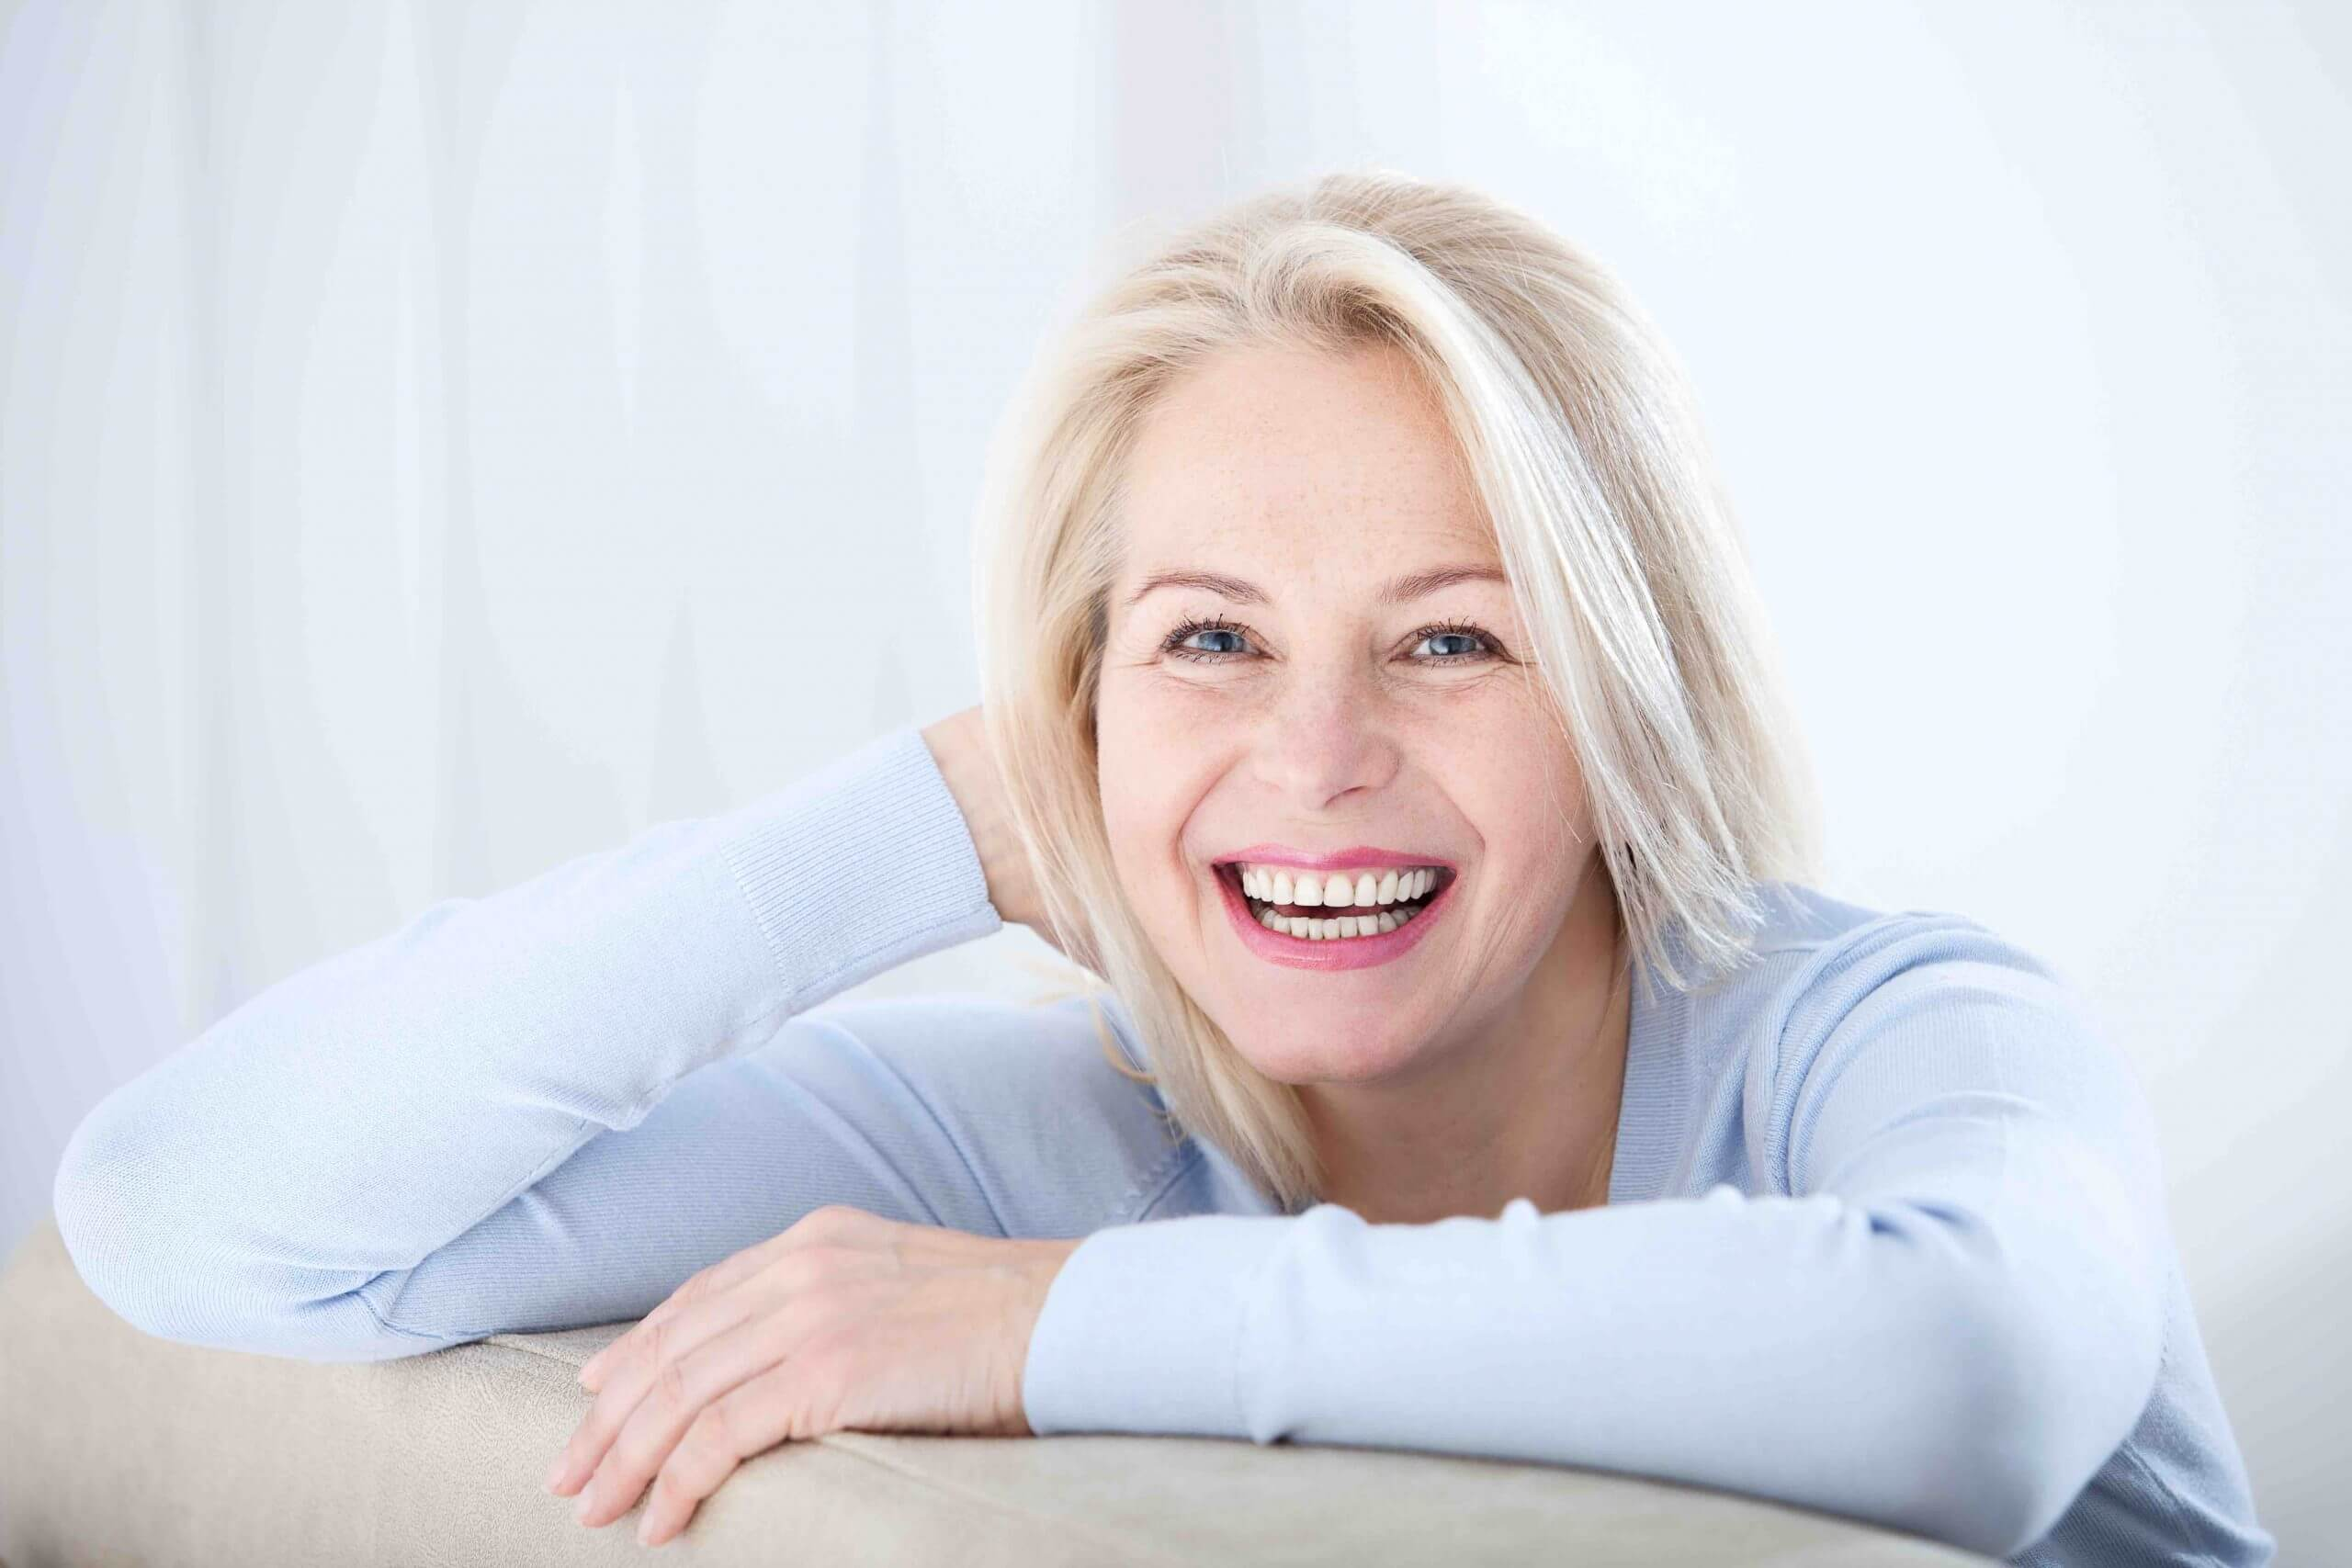 blond lady smiling